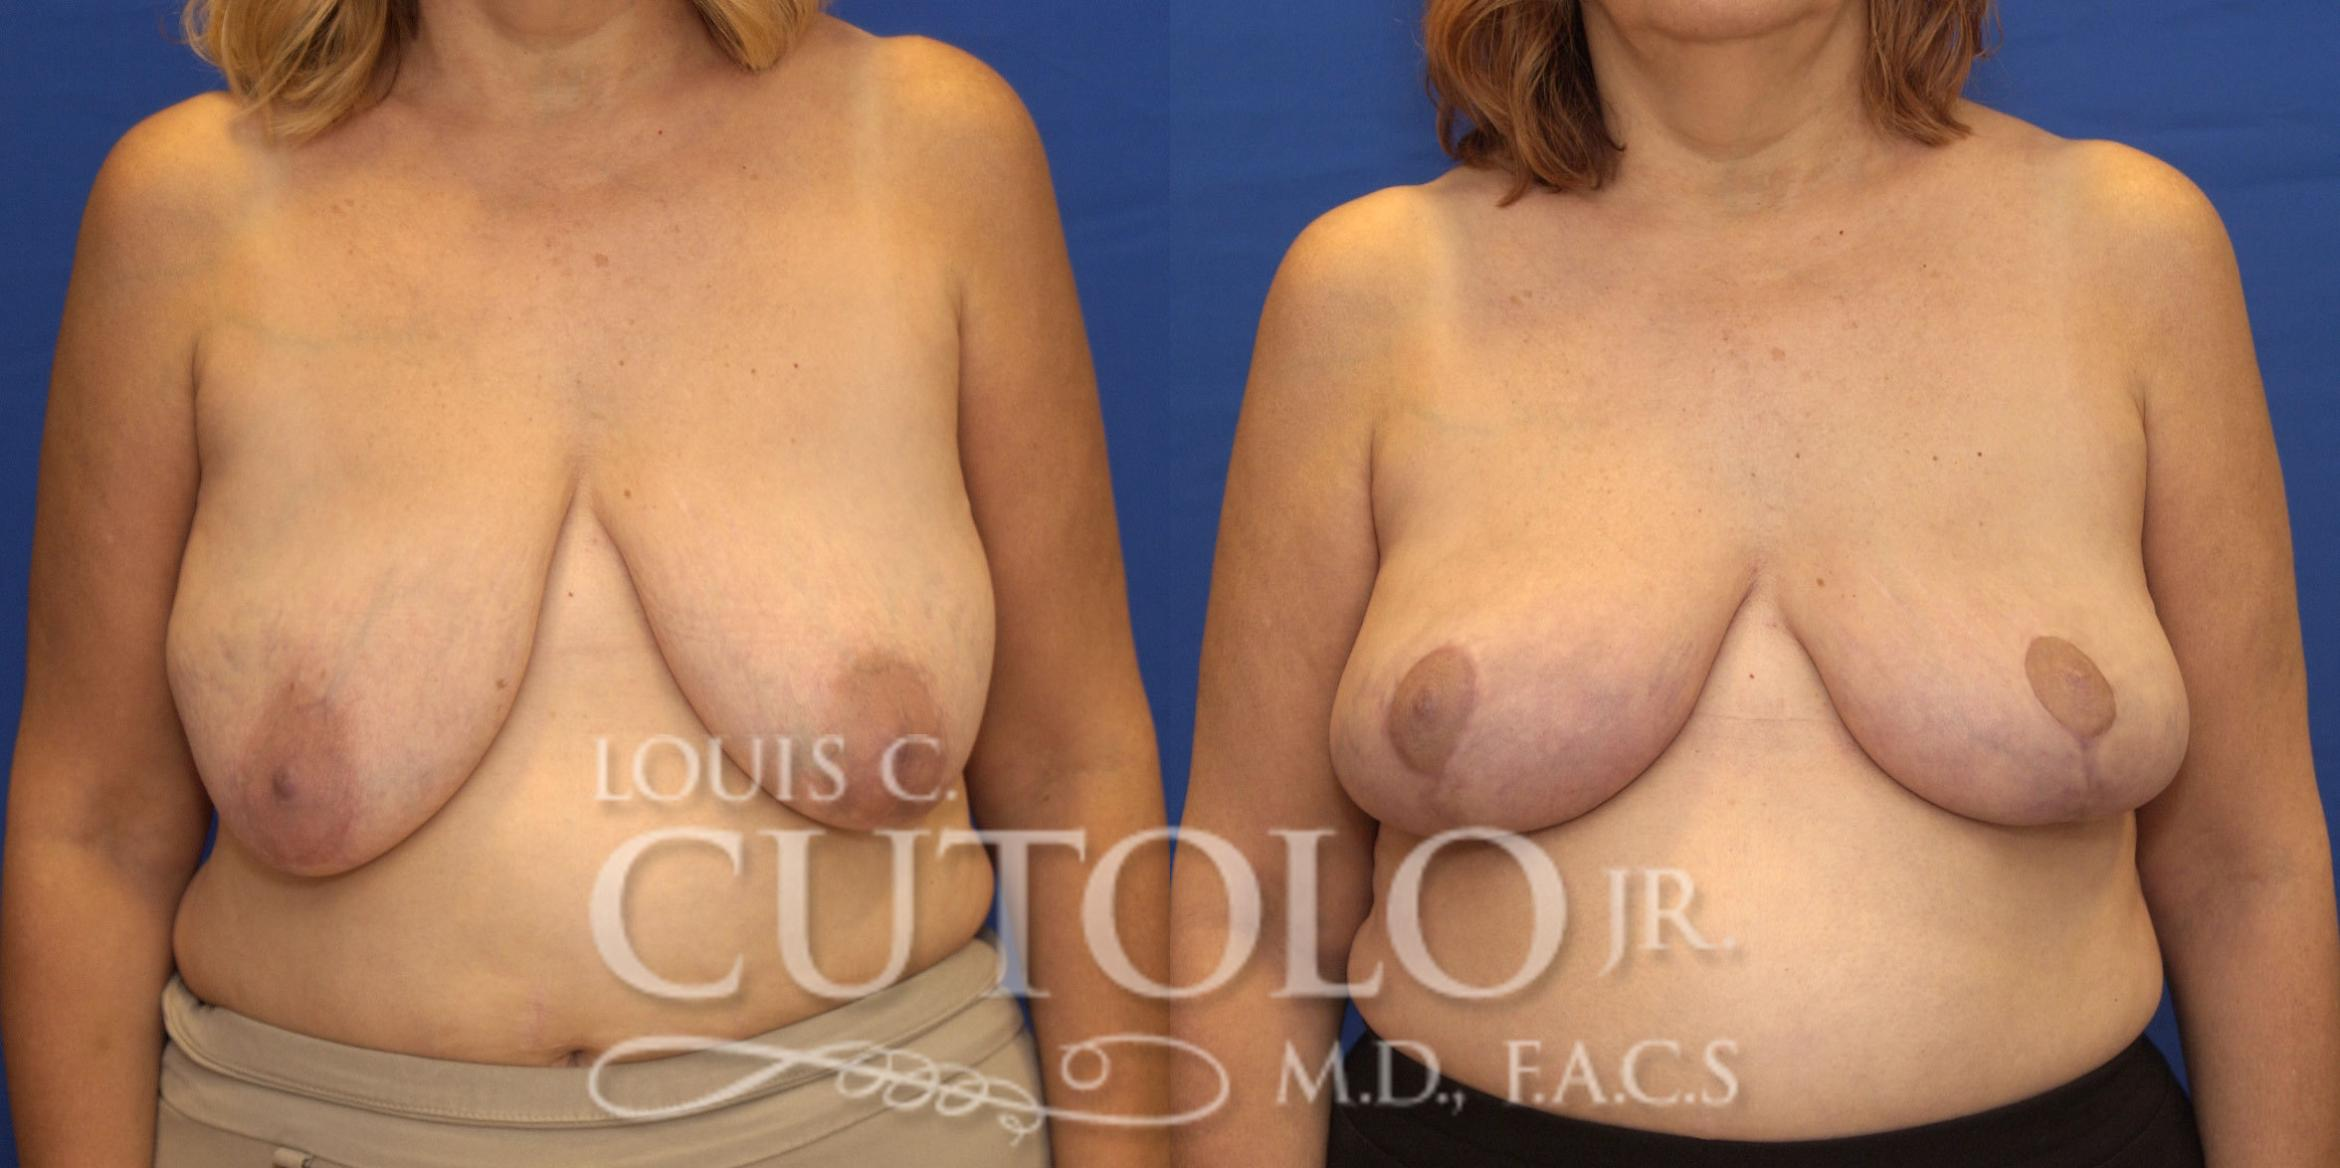 Breast Lift Before & After Photo | Brooklyn, Staten Island, Queens, NY | Louis C. Cotolo, Jr., M.D., F.A.C.S.